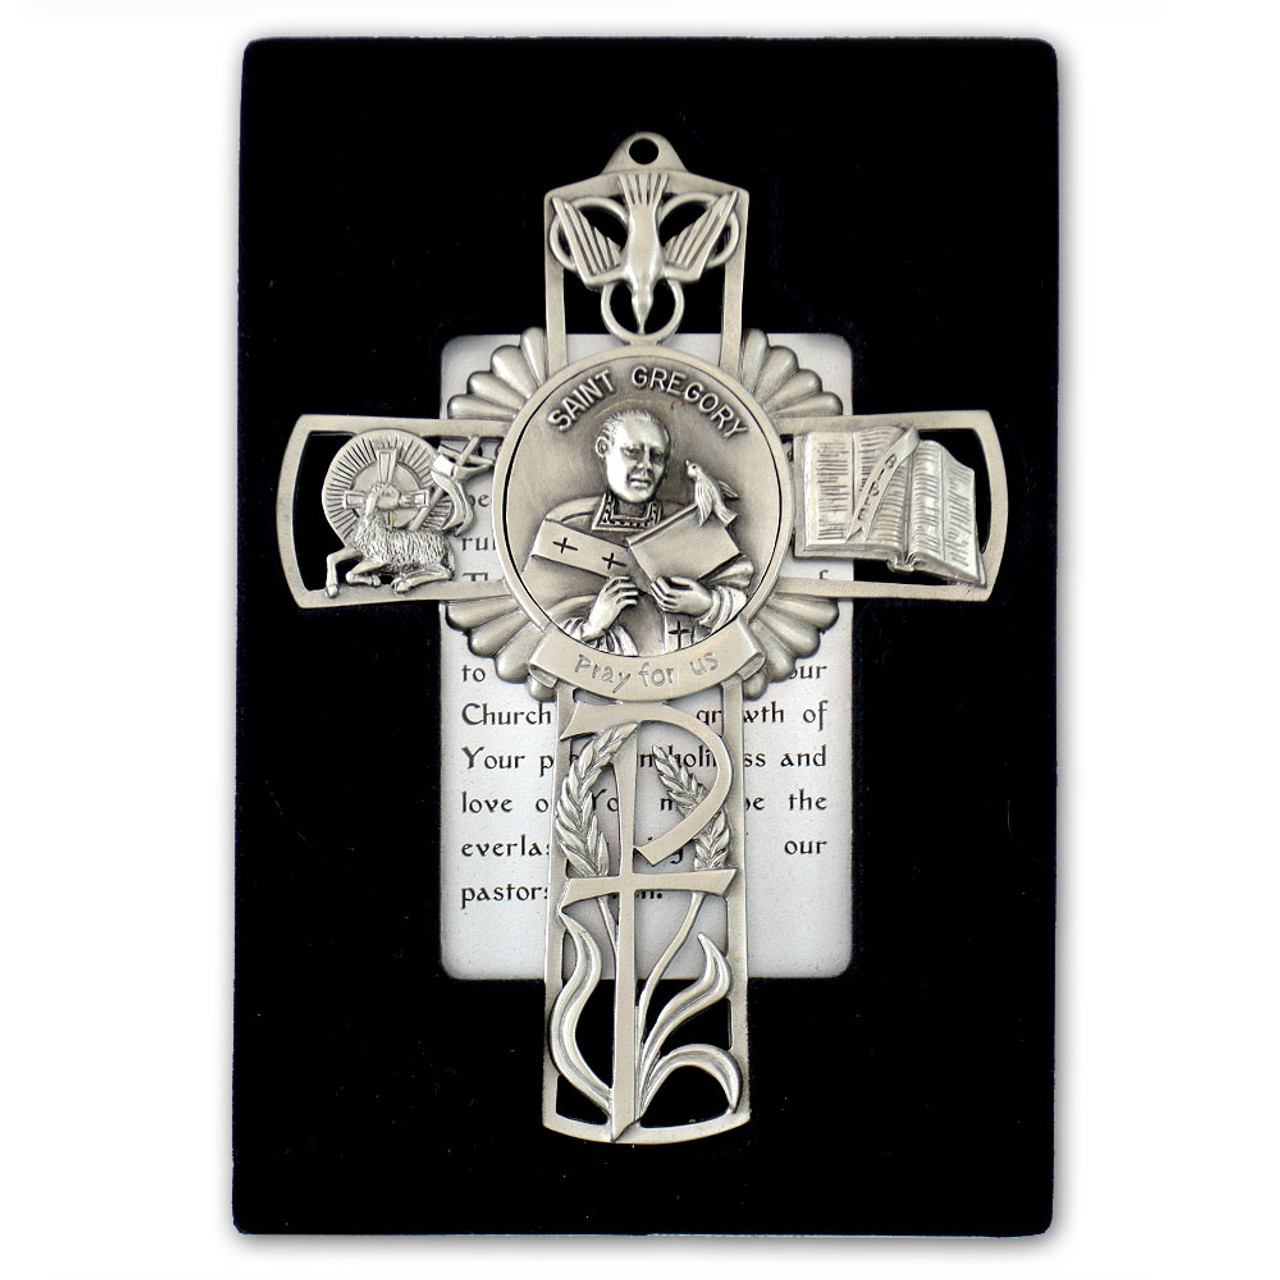 St Gregory Pewter Cross